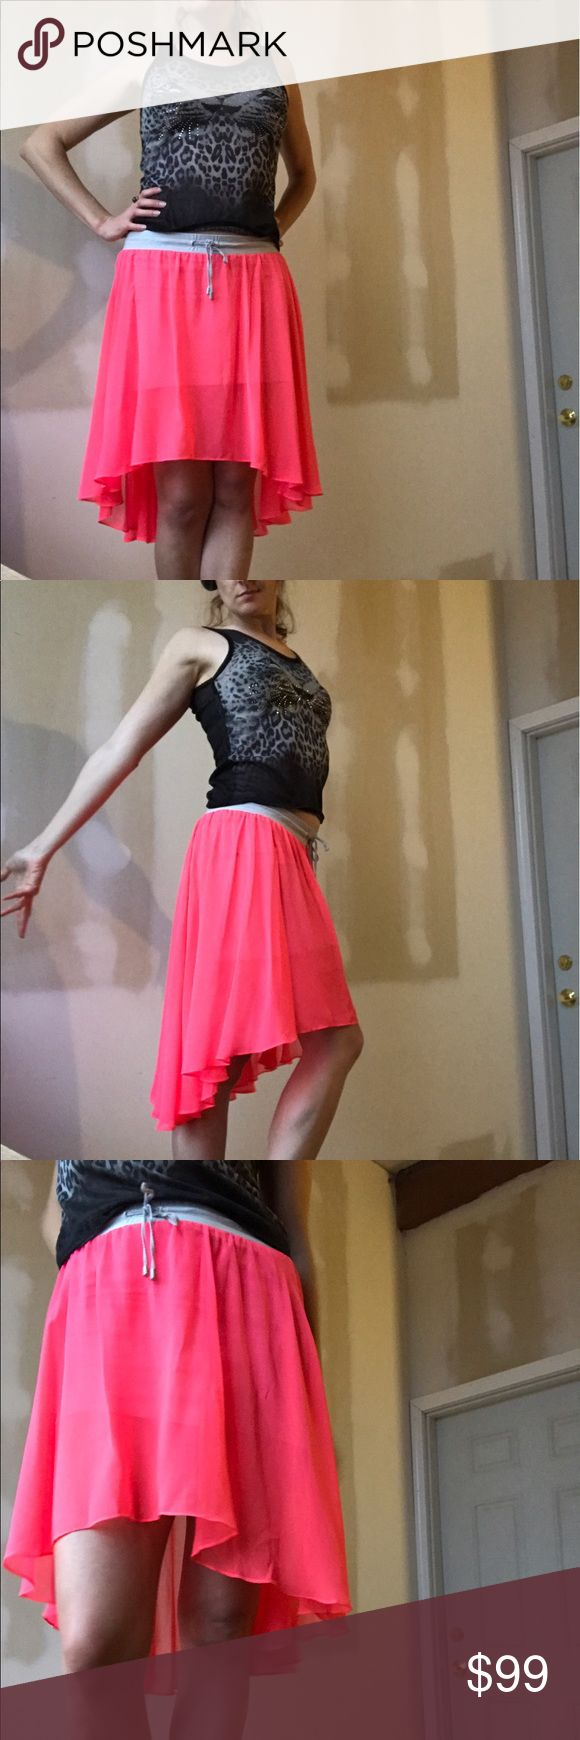 Armani Exchange 🌺hot pink🌹 high low skirt size12 Sheer hot pink and athletic high low rayon skirt with light grey elastic waistband. Trending this season, rare find for this price! 🌈open to offers.... flexible with pricing 💥 ARMANI EXCHANGE 🥊🍎 Armani Exchange Skirts High Low